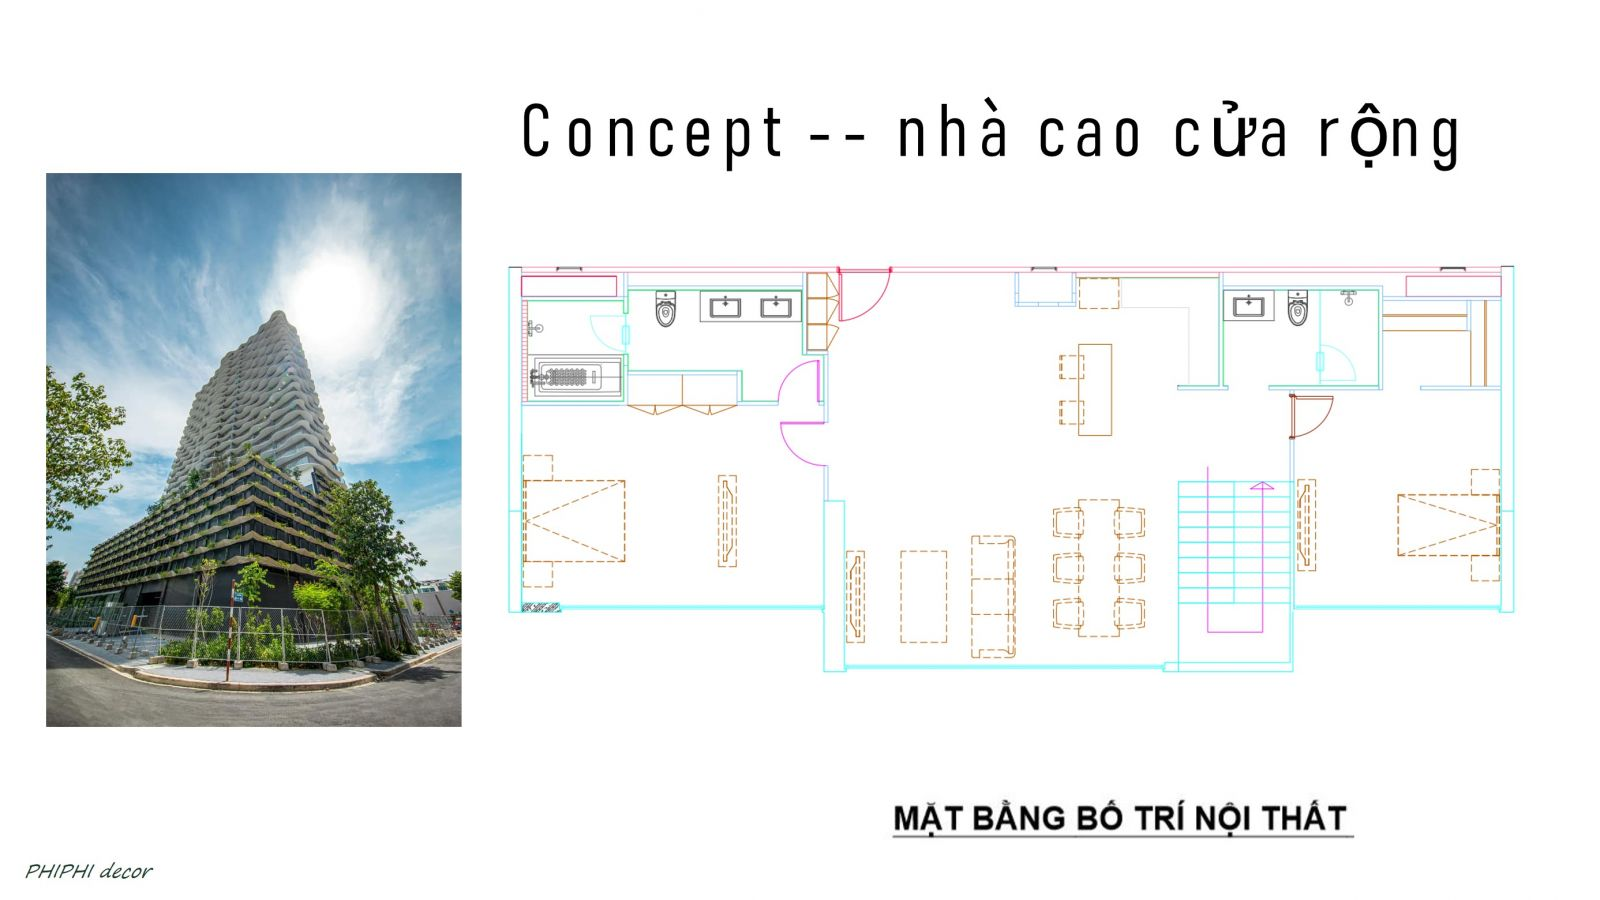 NỘI THẤT CĂN HỘ ANH MARK WATERINA Q2 NEO CLASSIC TRANSITIONAL STYLE